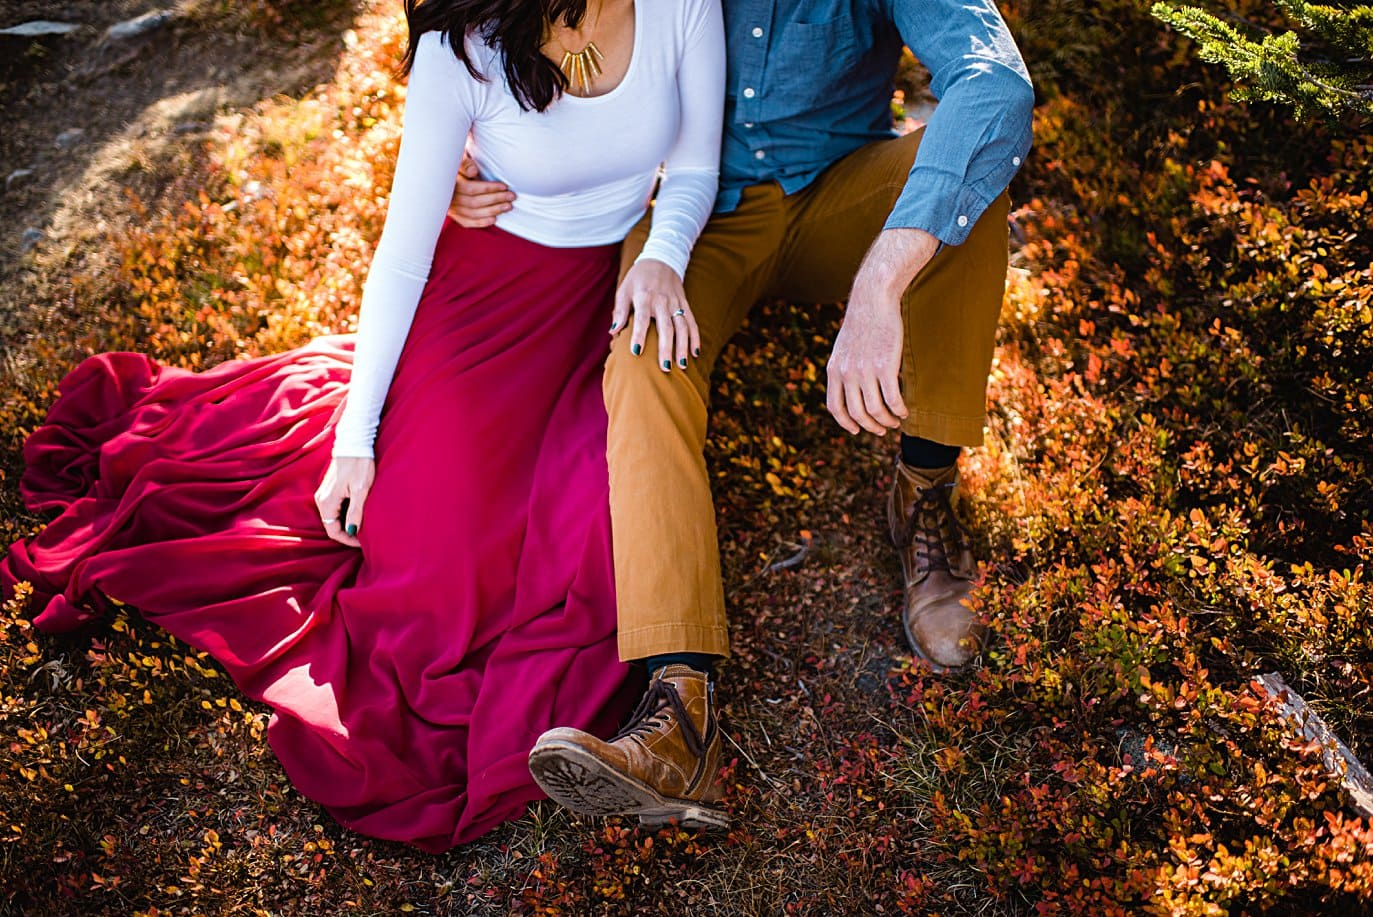 maroon skirt white top stylish fall engagement outfit by Denver engagement photographer Jennie Crate